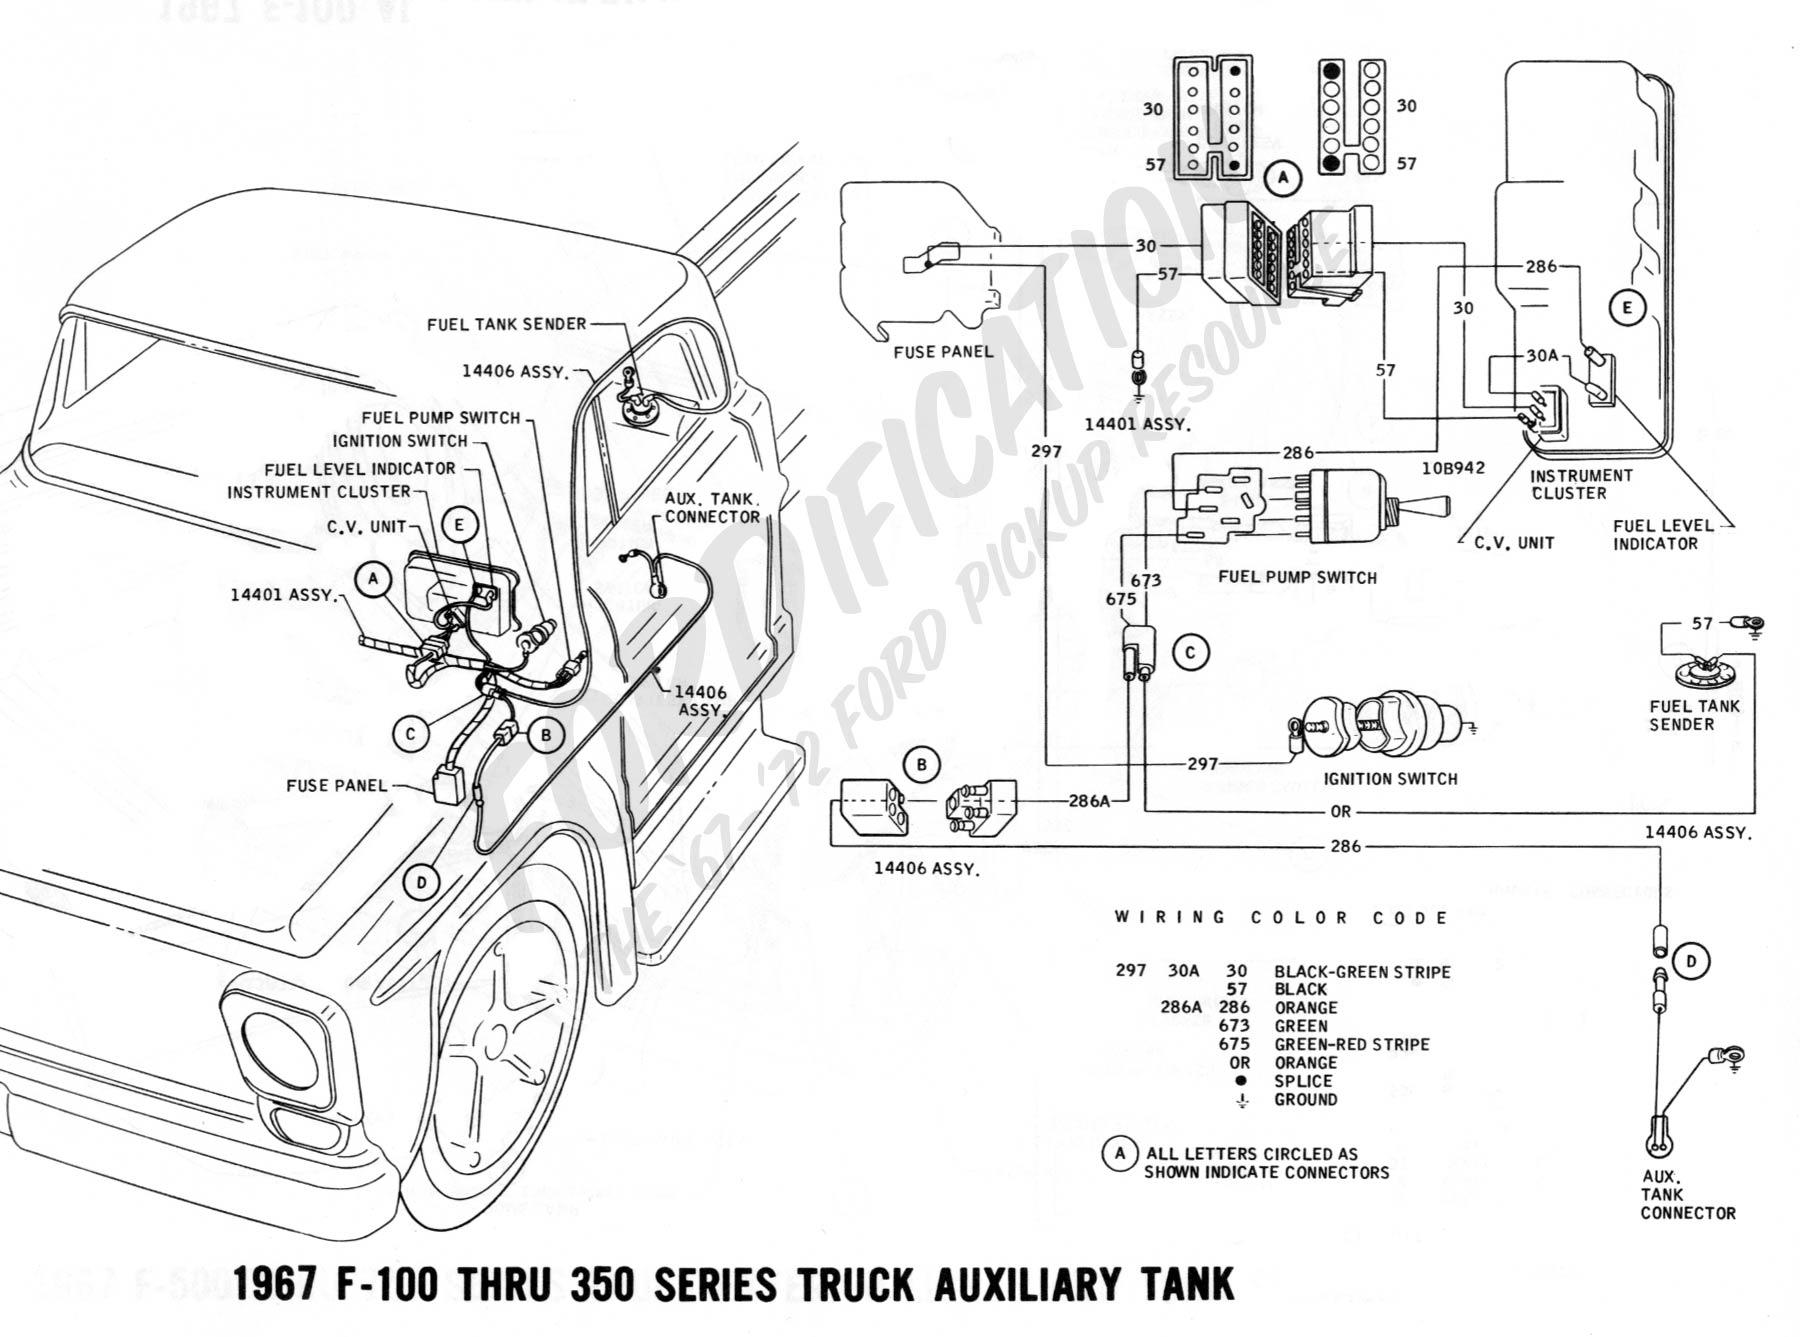 1976 Ford Turn Signal Switch Wiring Diagram Libraries F100 For 76 F 250 Resources1976 Mustang Electrical Schematics Rh Landingchurchseattle